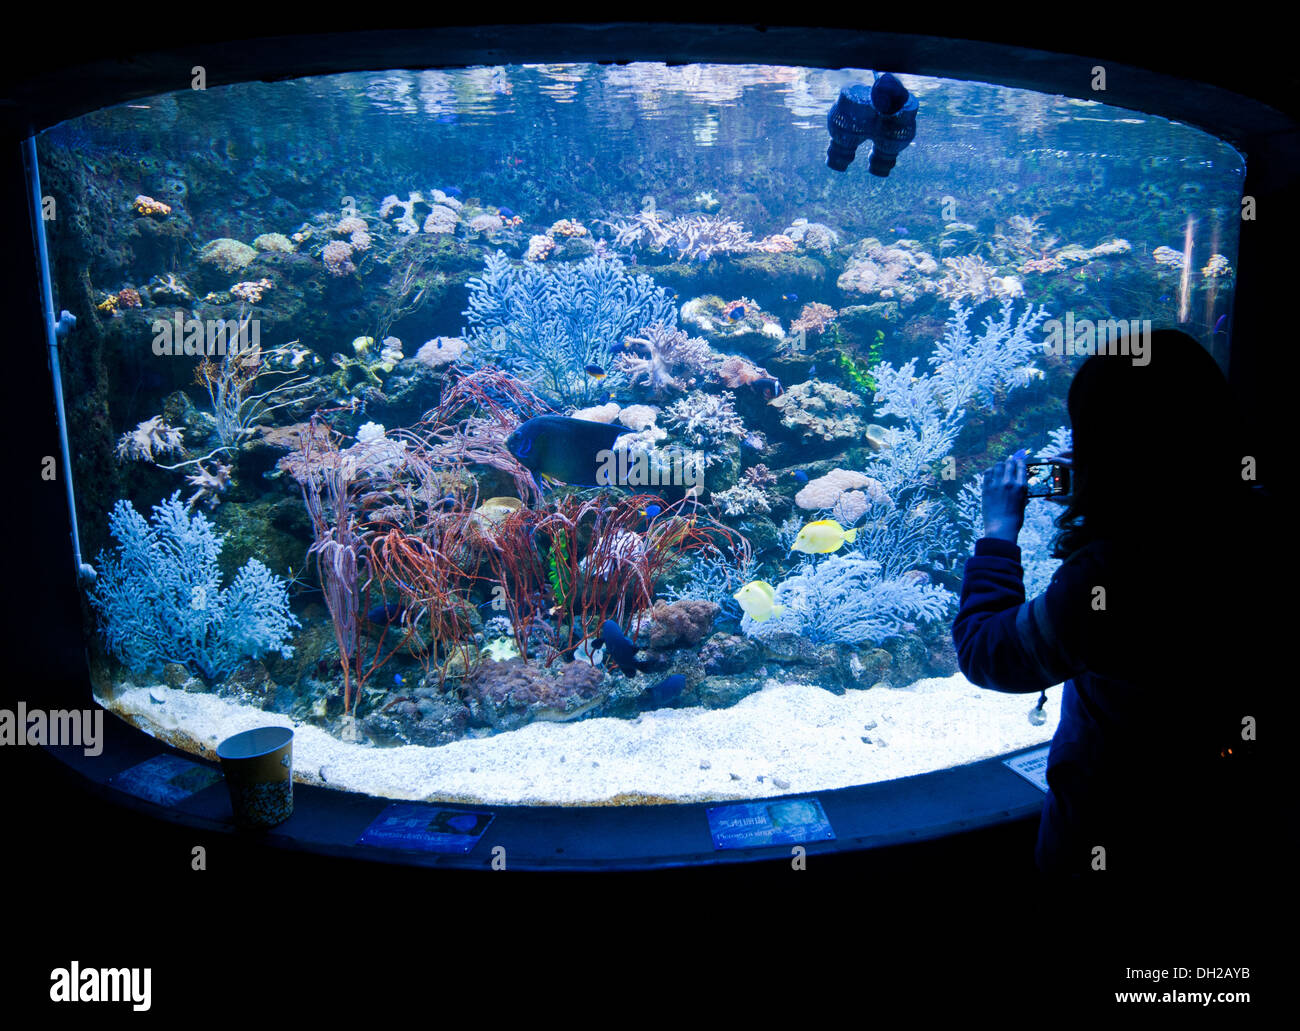 Large Fish Tank In Beijing Gongti Richina Underwater World Also Called Blue Zoo China